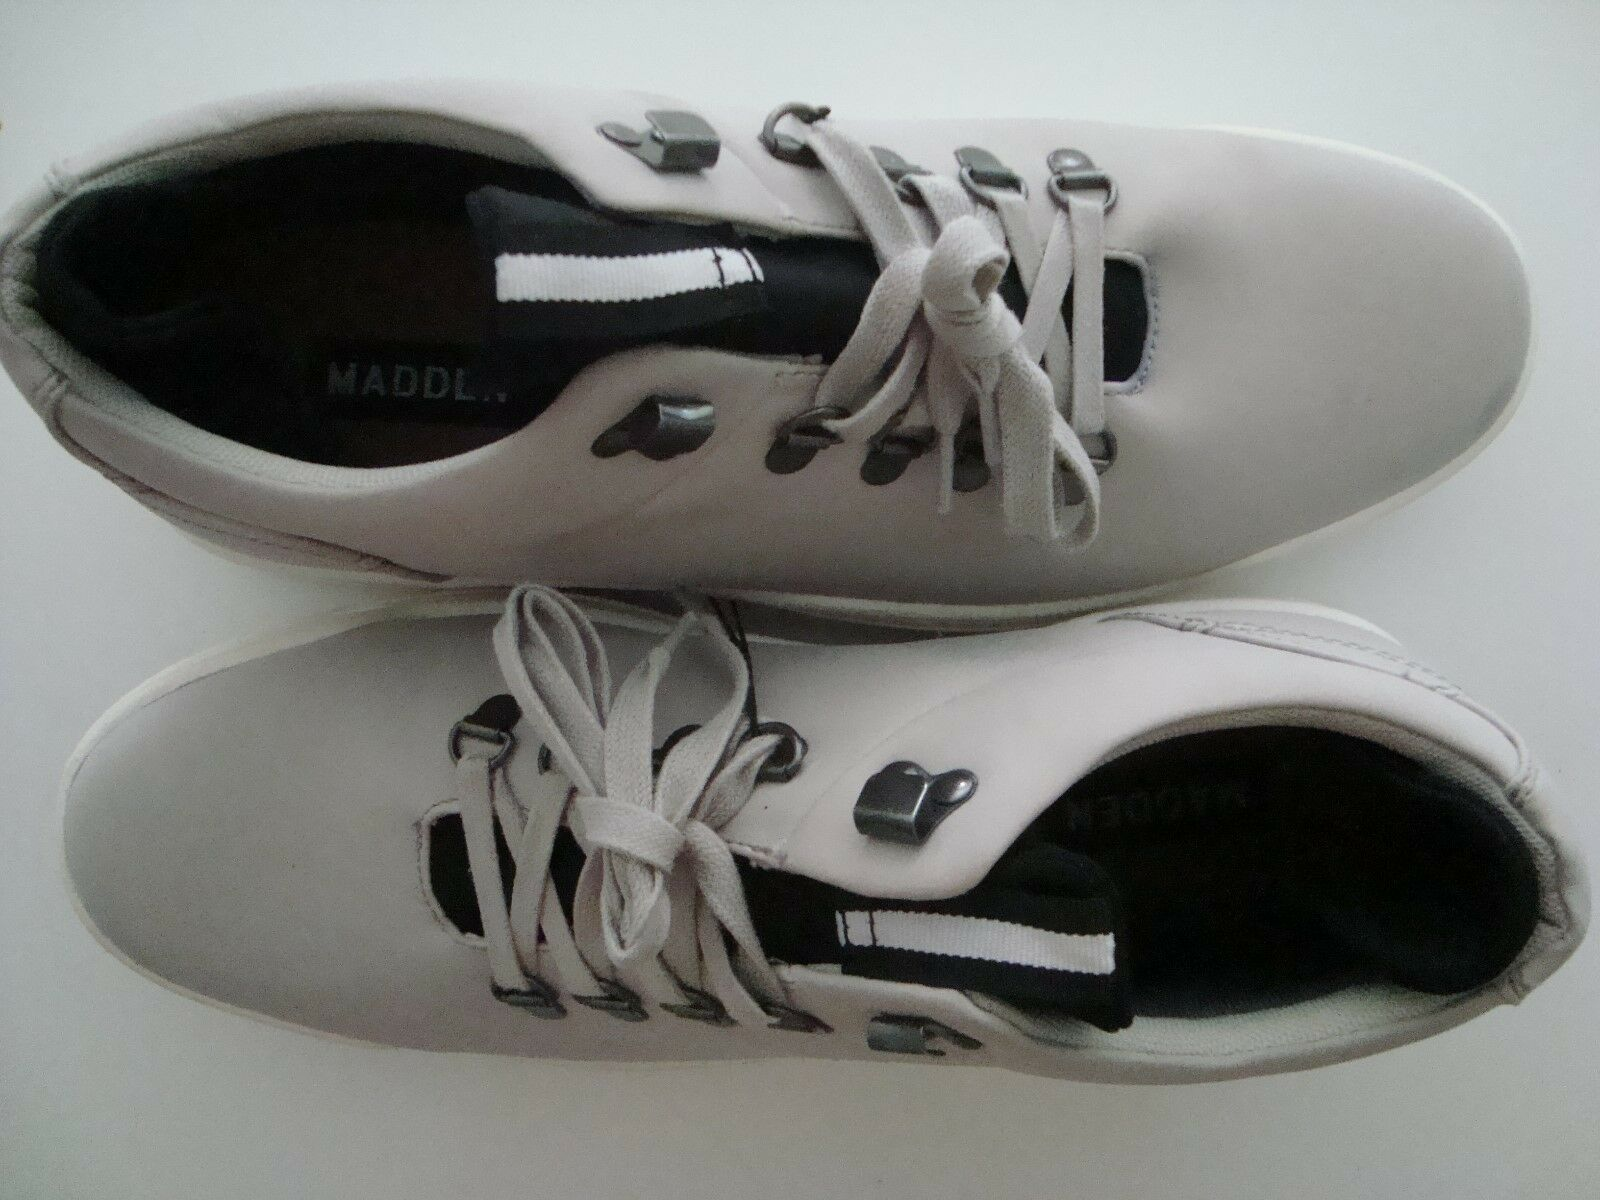 STEVE MADDEN MENS M-JAYXON CASUAL SHIPPING) SHOES SIZE 10.5 (FREE SHIPPING) CASUAL 714fb2